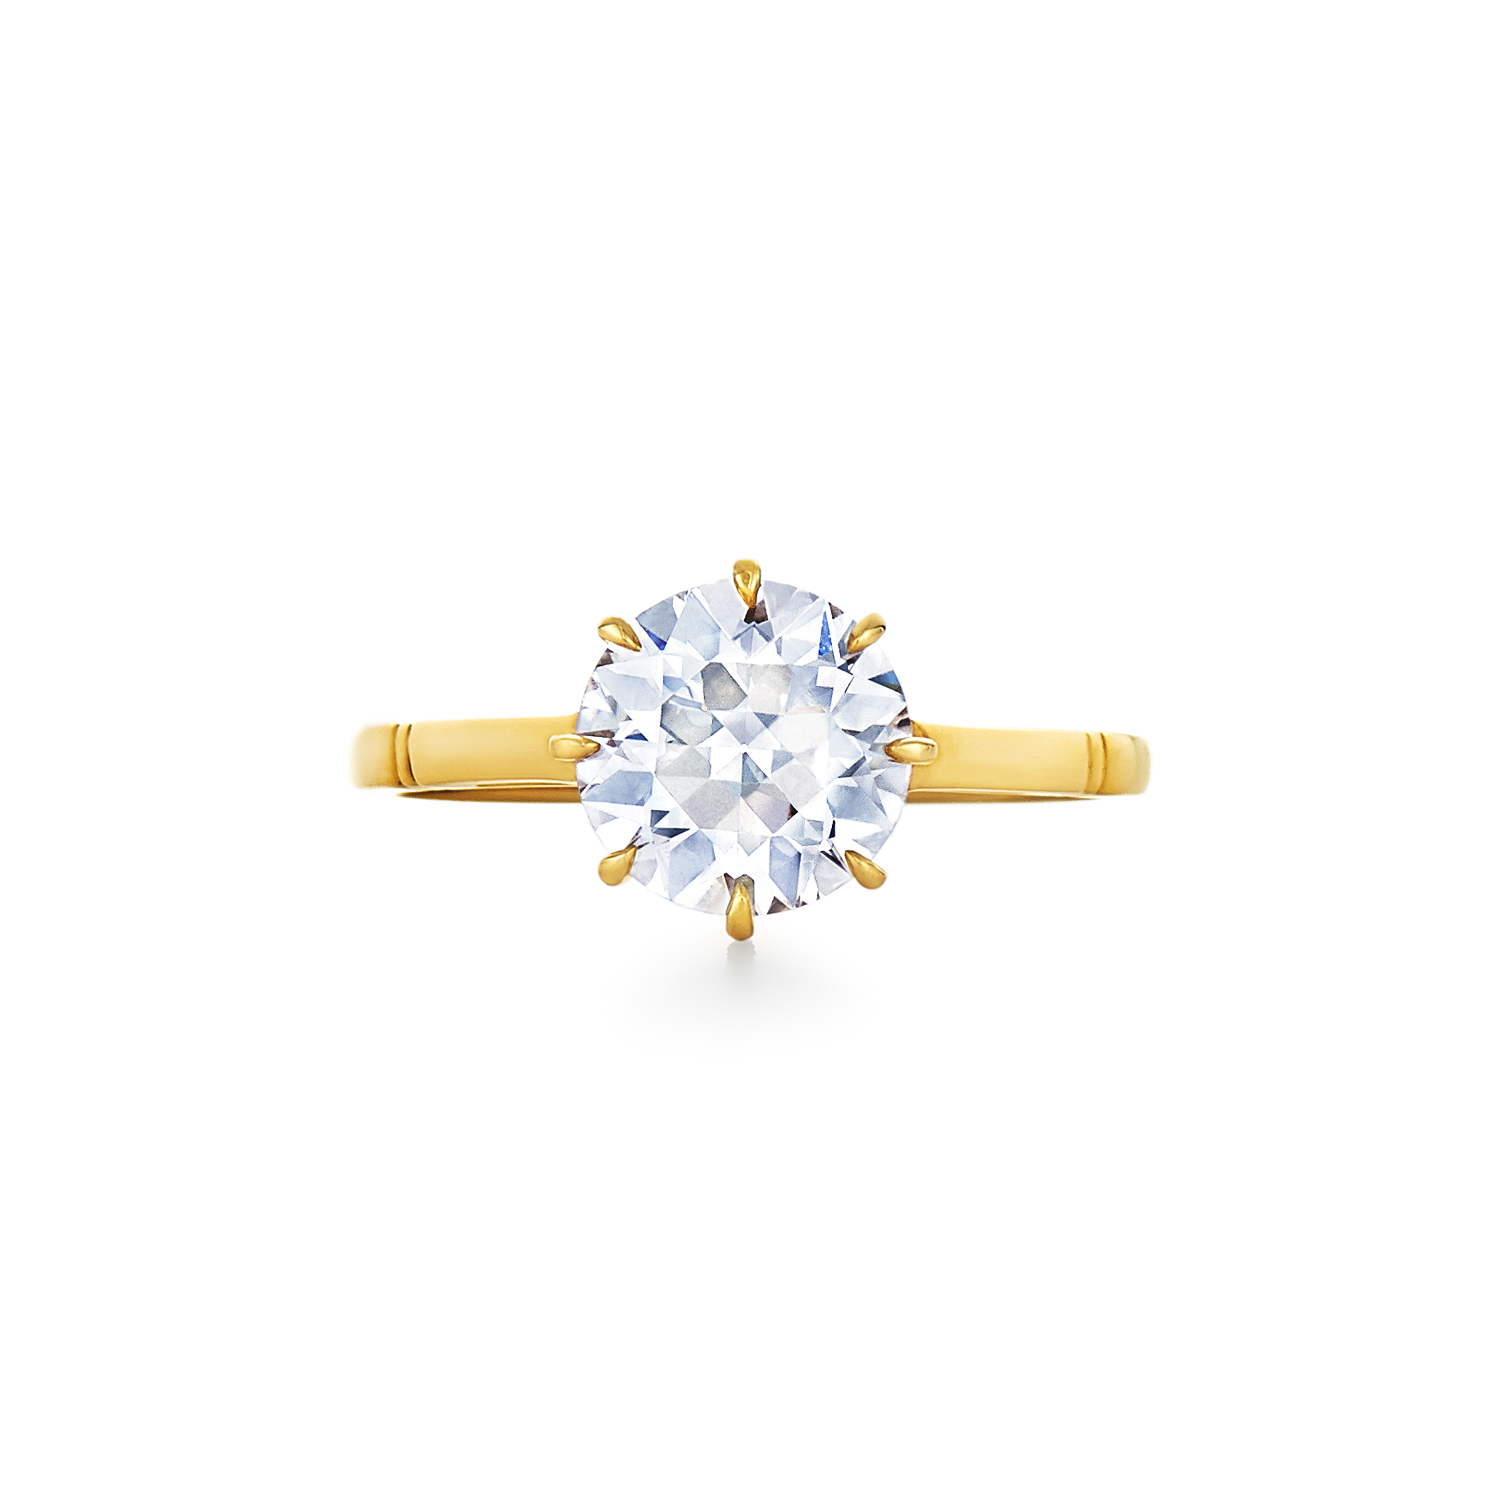 Old European Cut Diamond Solitaire Ring Signed Fred Leighton Style F-1032FL-0-DIA-18KY